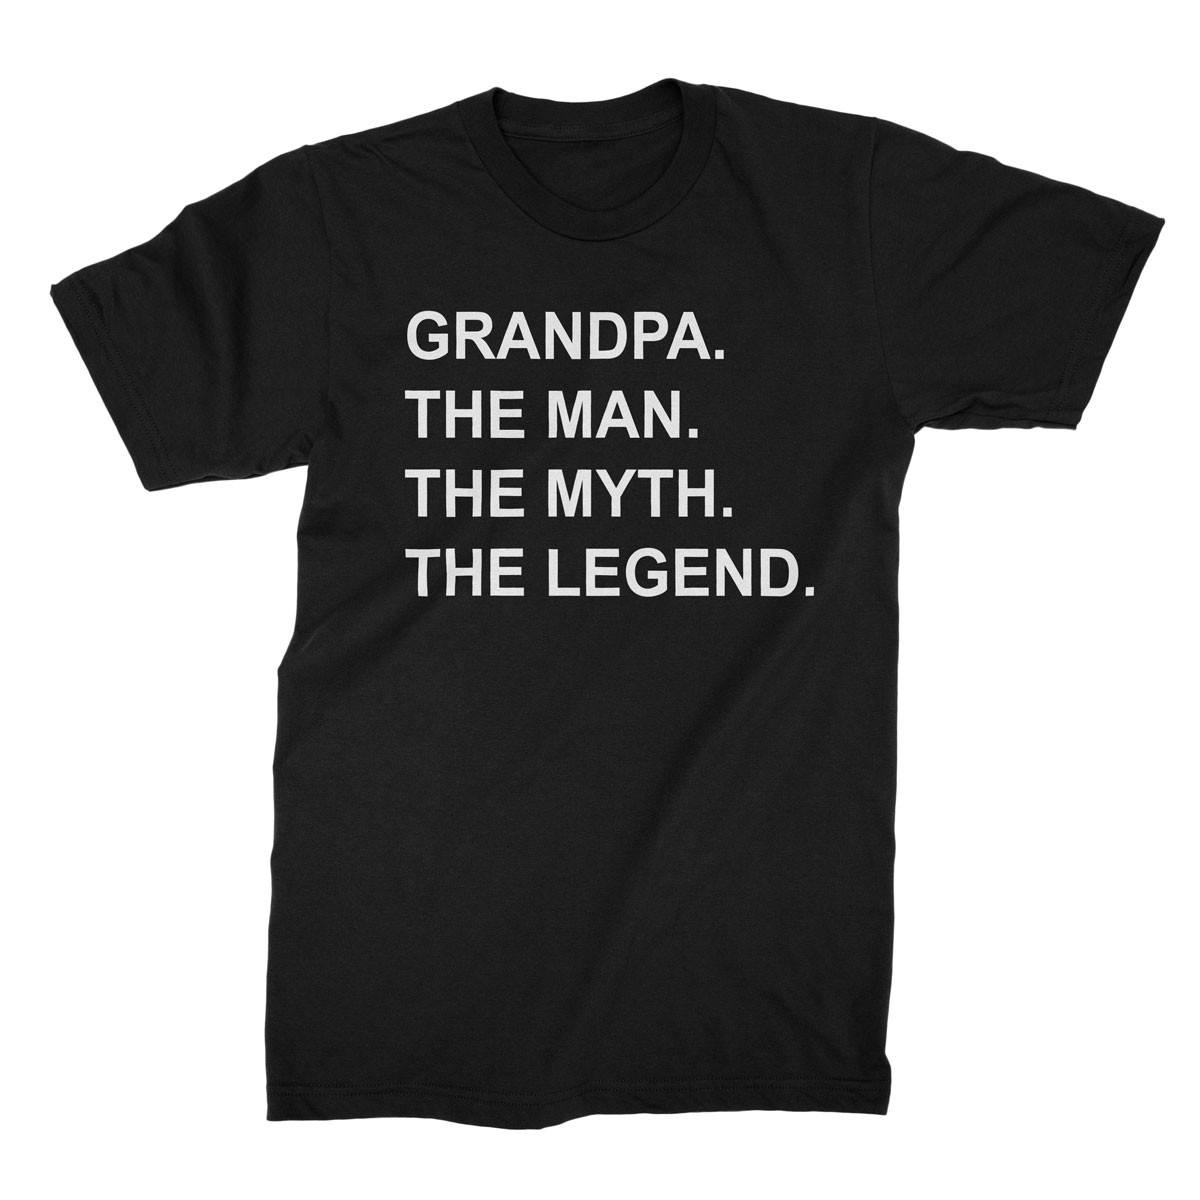 T-Shirts - The Man. The Myth. The Legend.